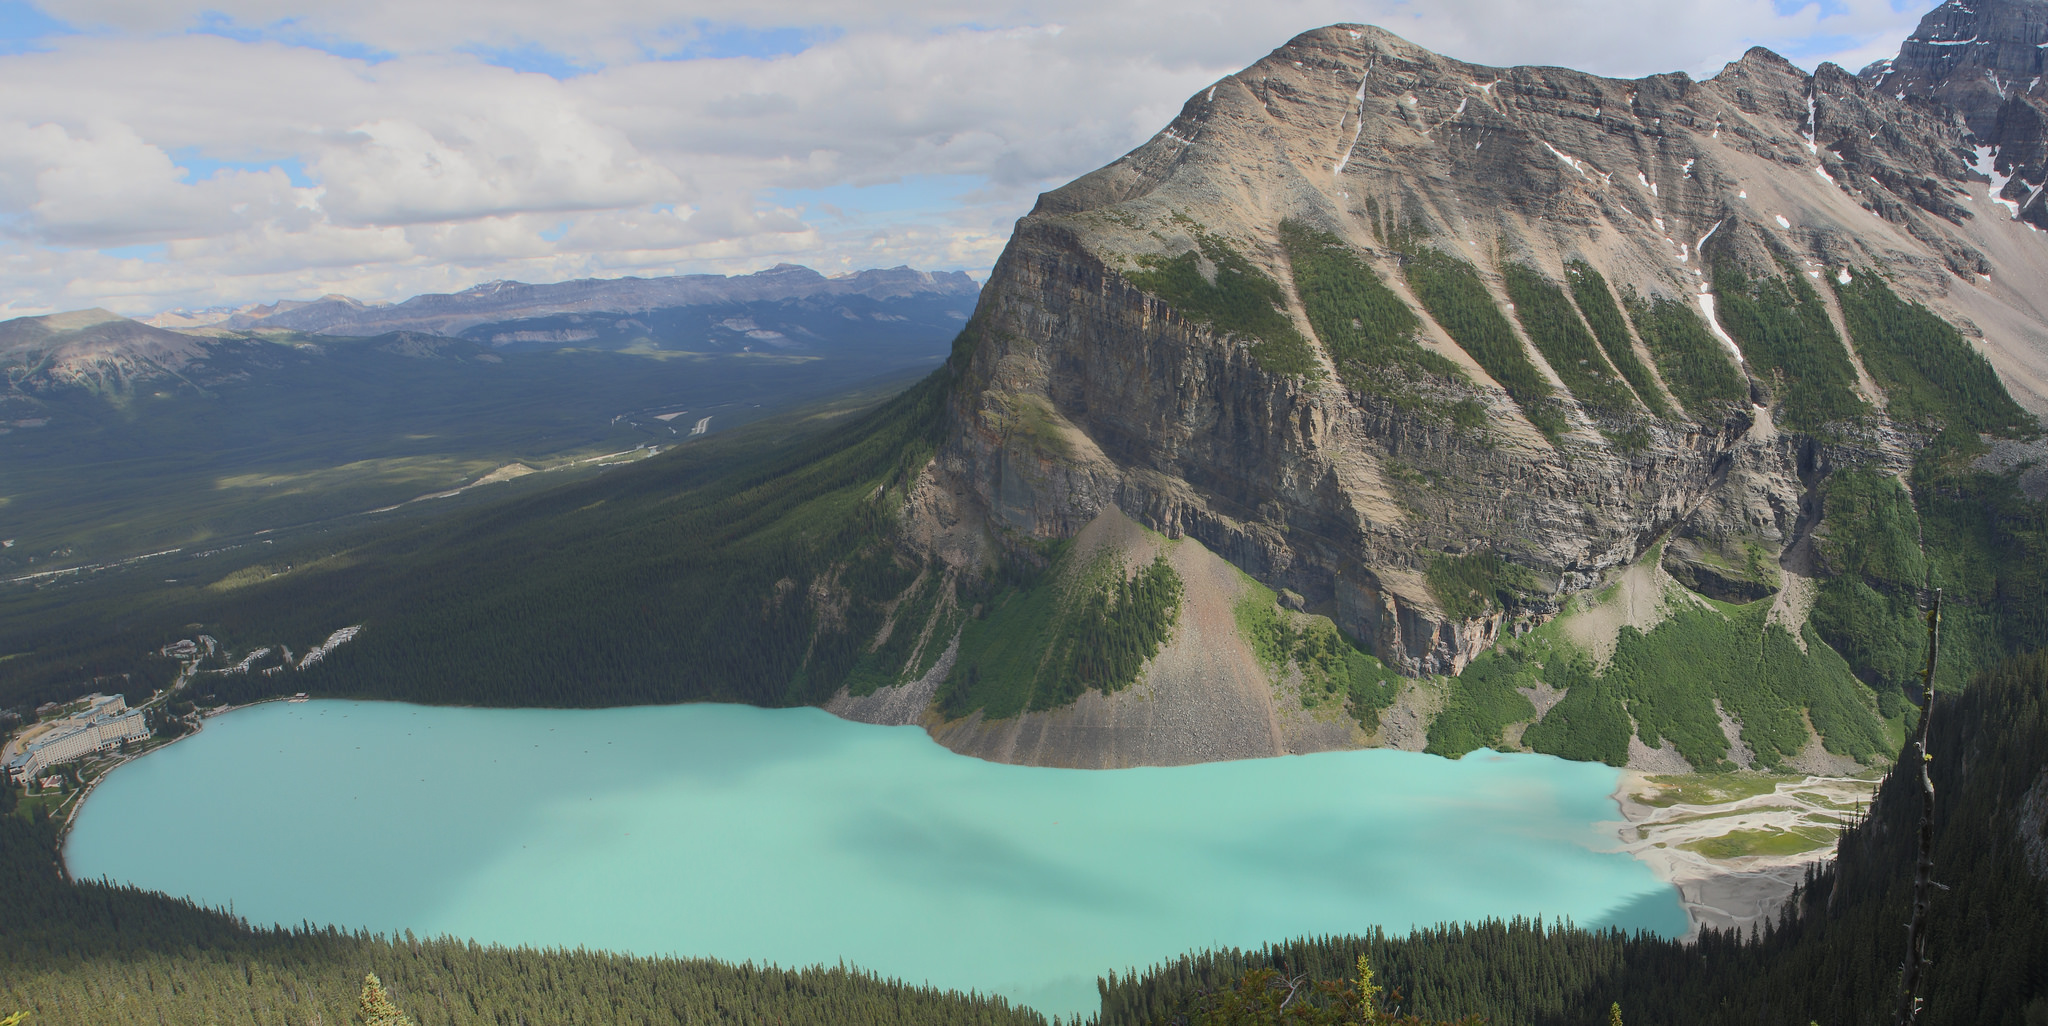 View of Lake Louise from the Beehive - Alberta, Canada